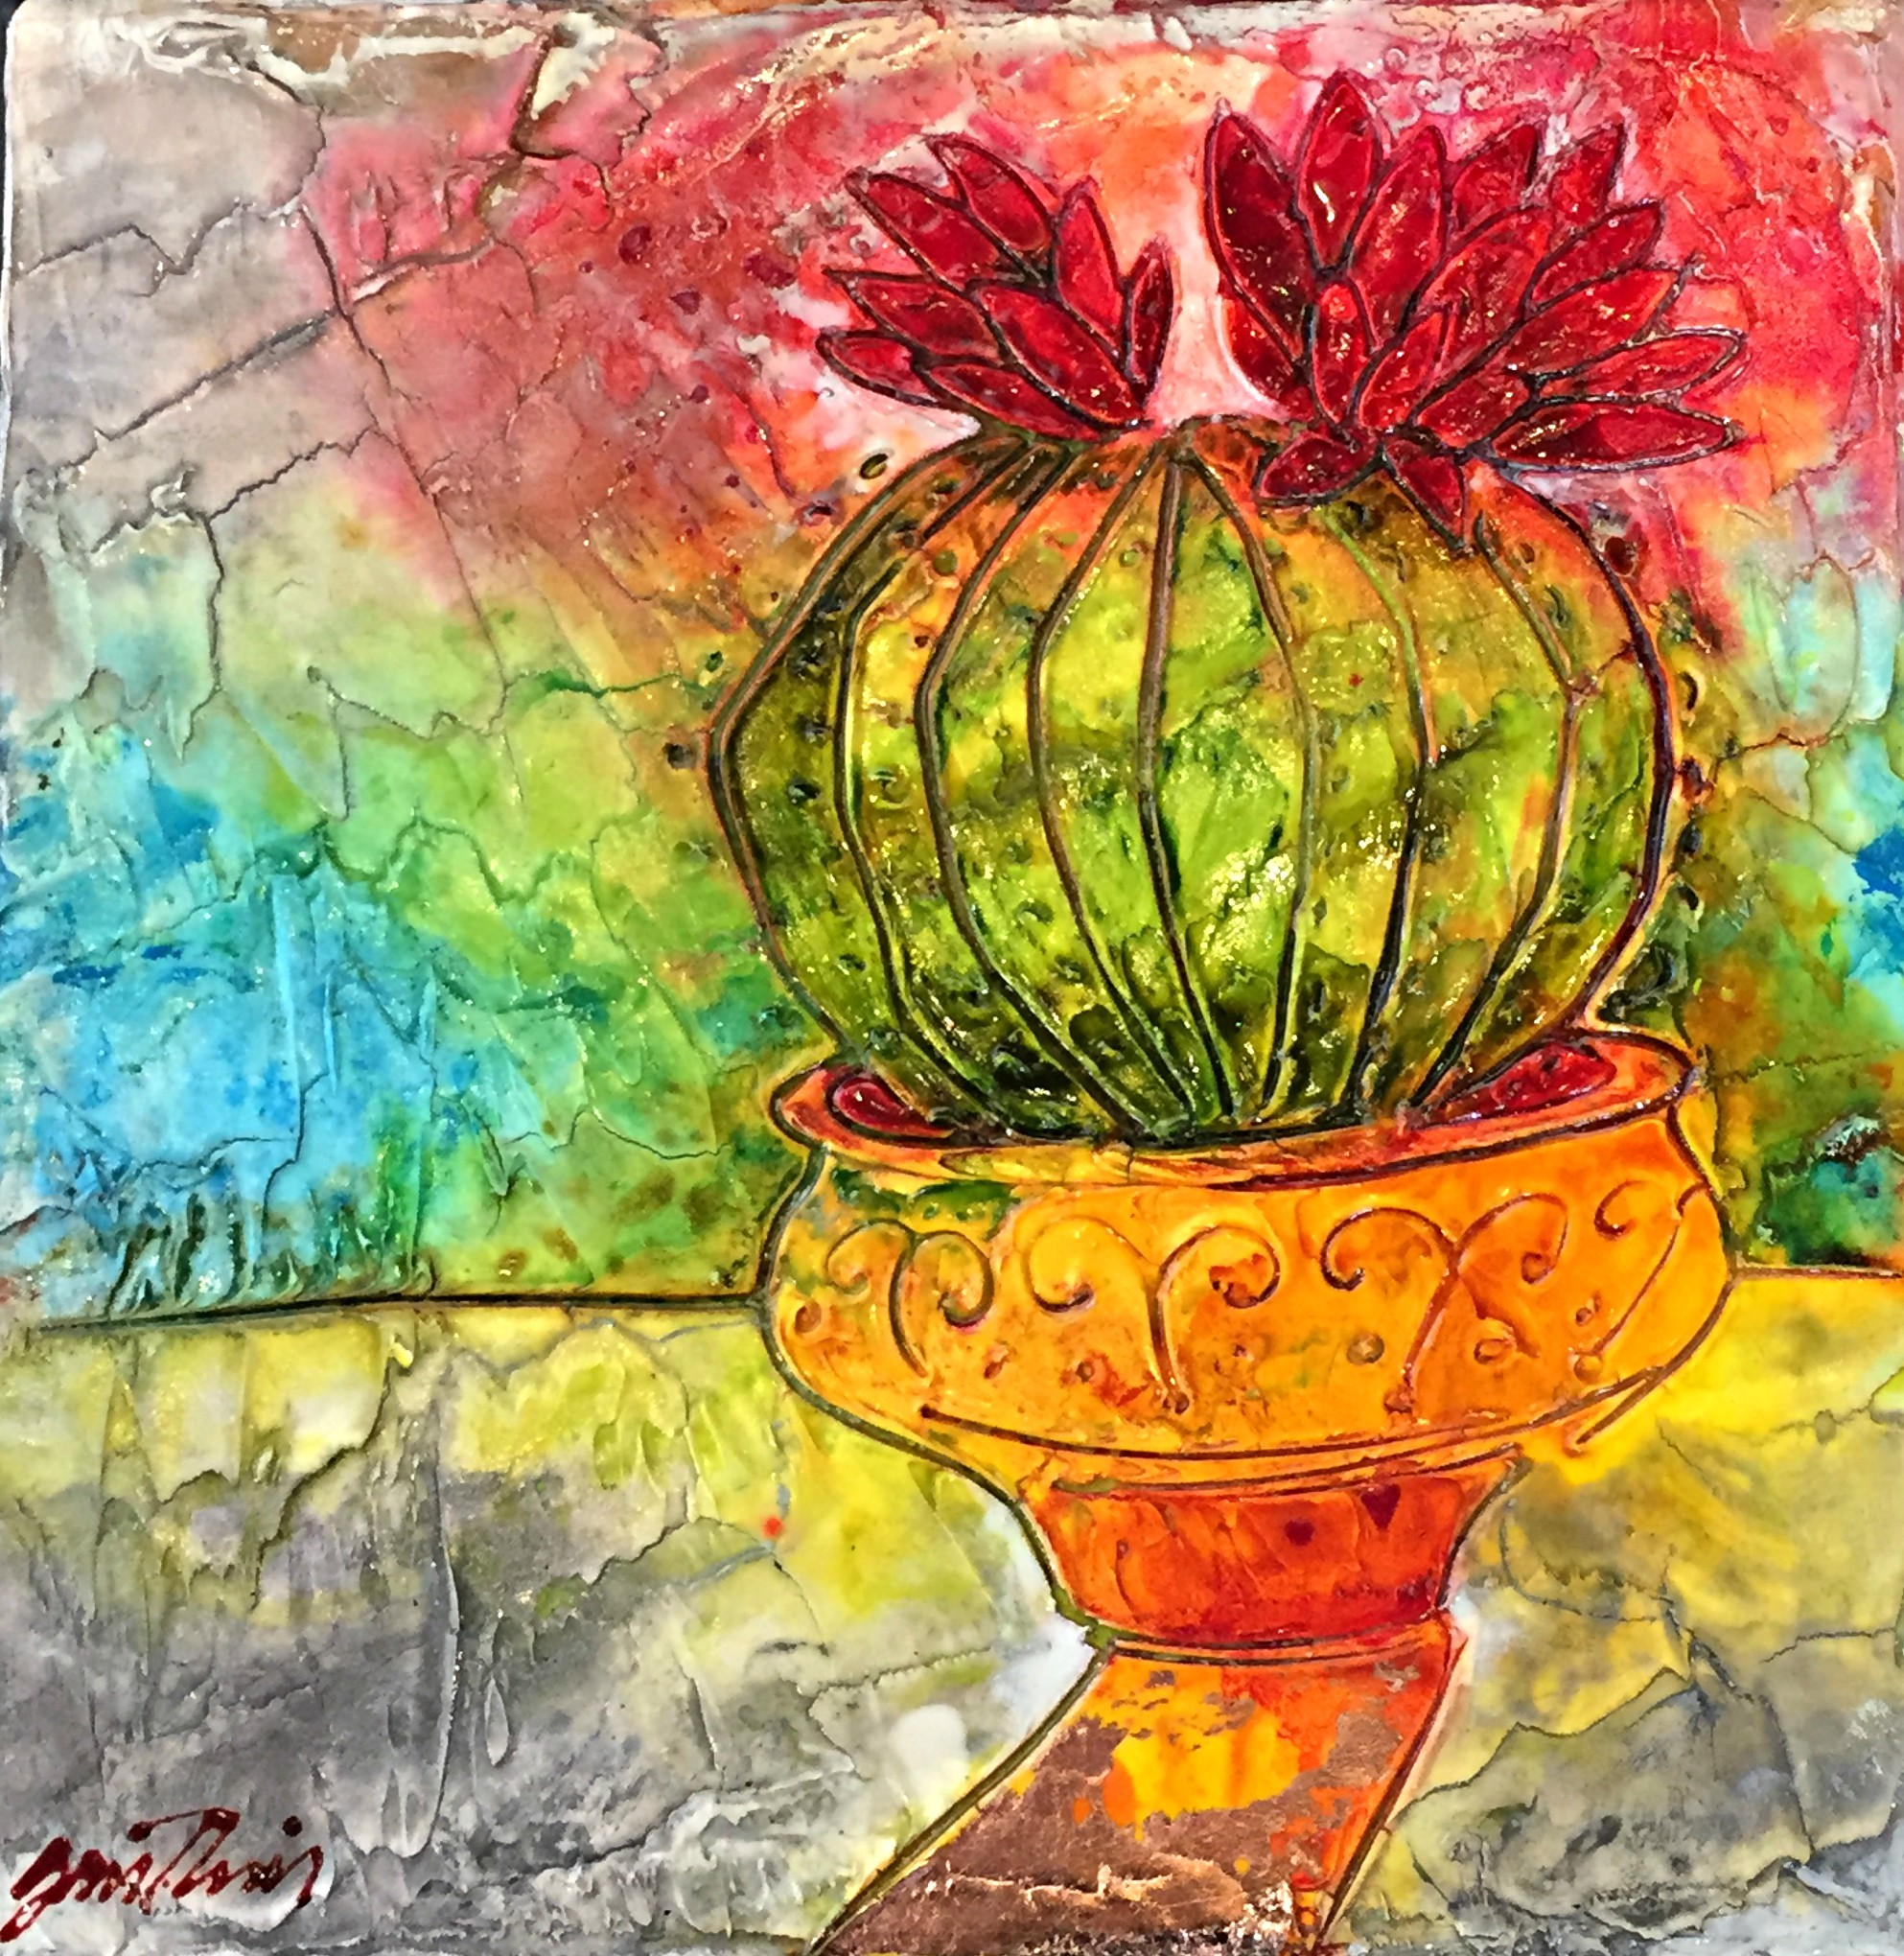 Cute Cactus, mixed media painting by Joanne Gauthier | Effusion Art Gallery + Cast Glass Studio, Invermere BC